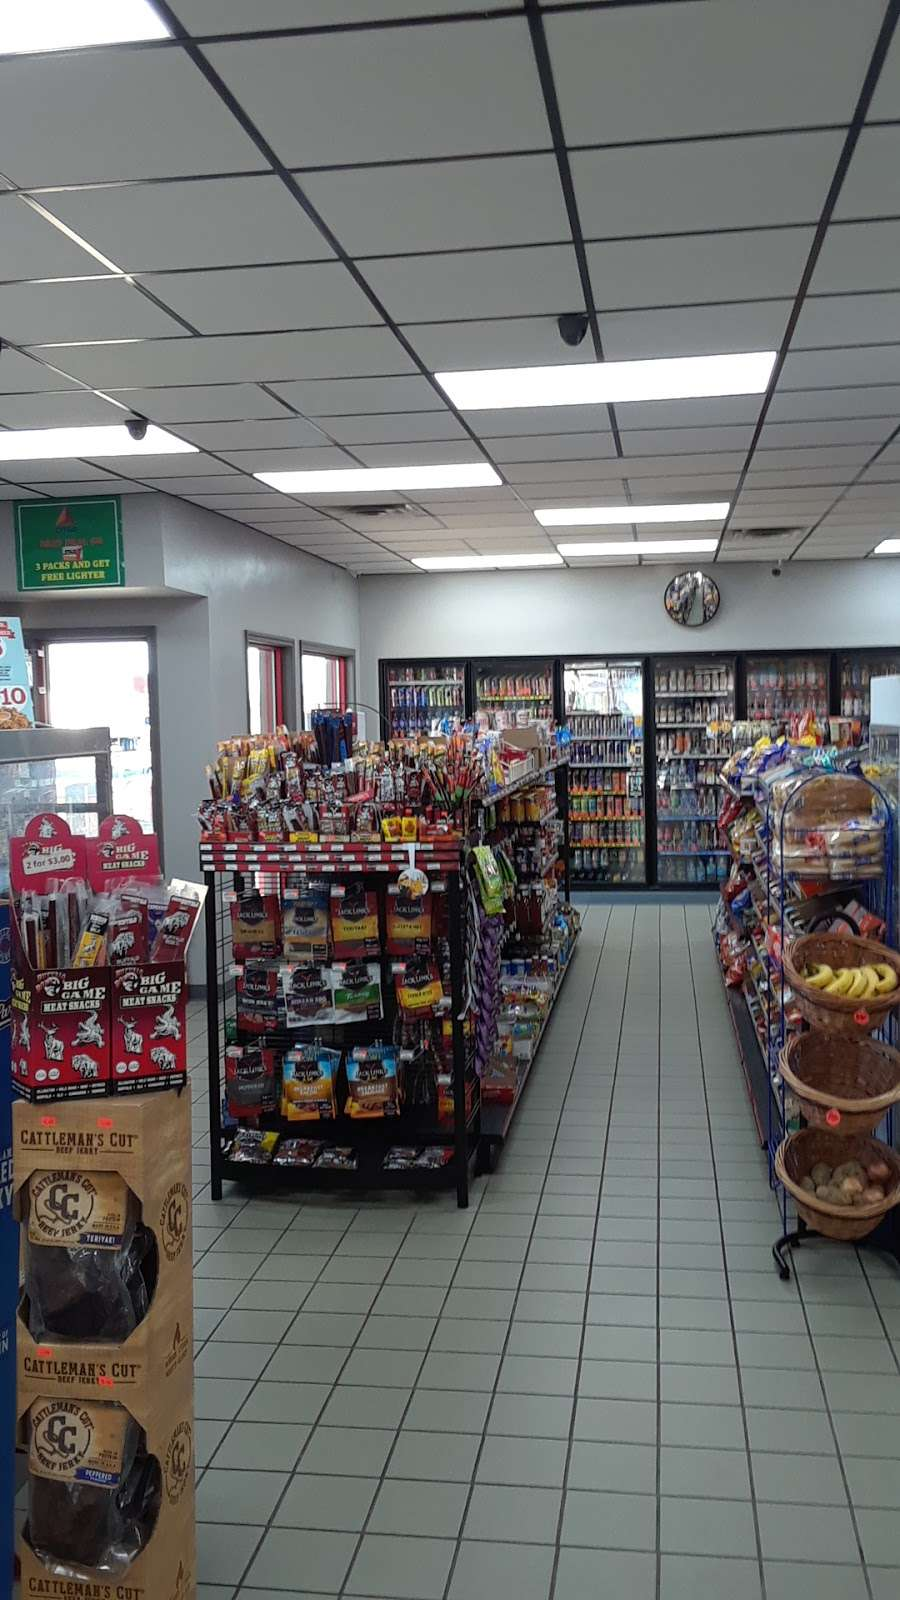 HANKS TRUCK STOP - gas station  | Photo 1 of 10 | Address: 1799 US-30, Hanna, IN 46340, USA | Phone: (219) 797-2244